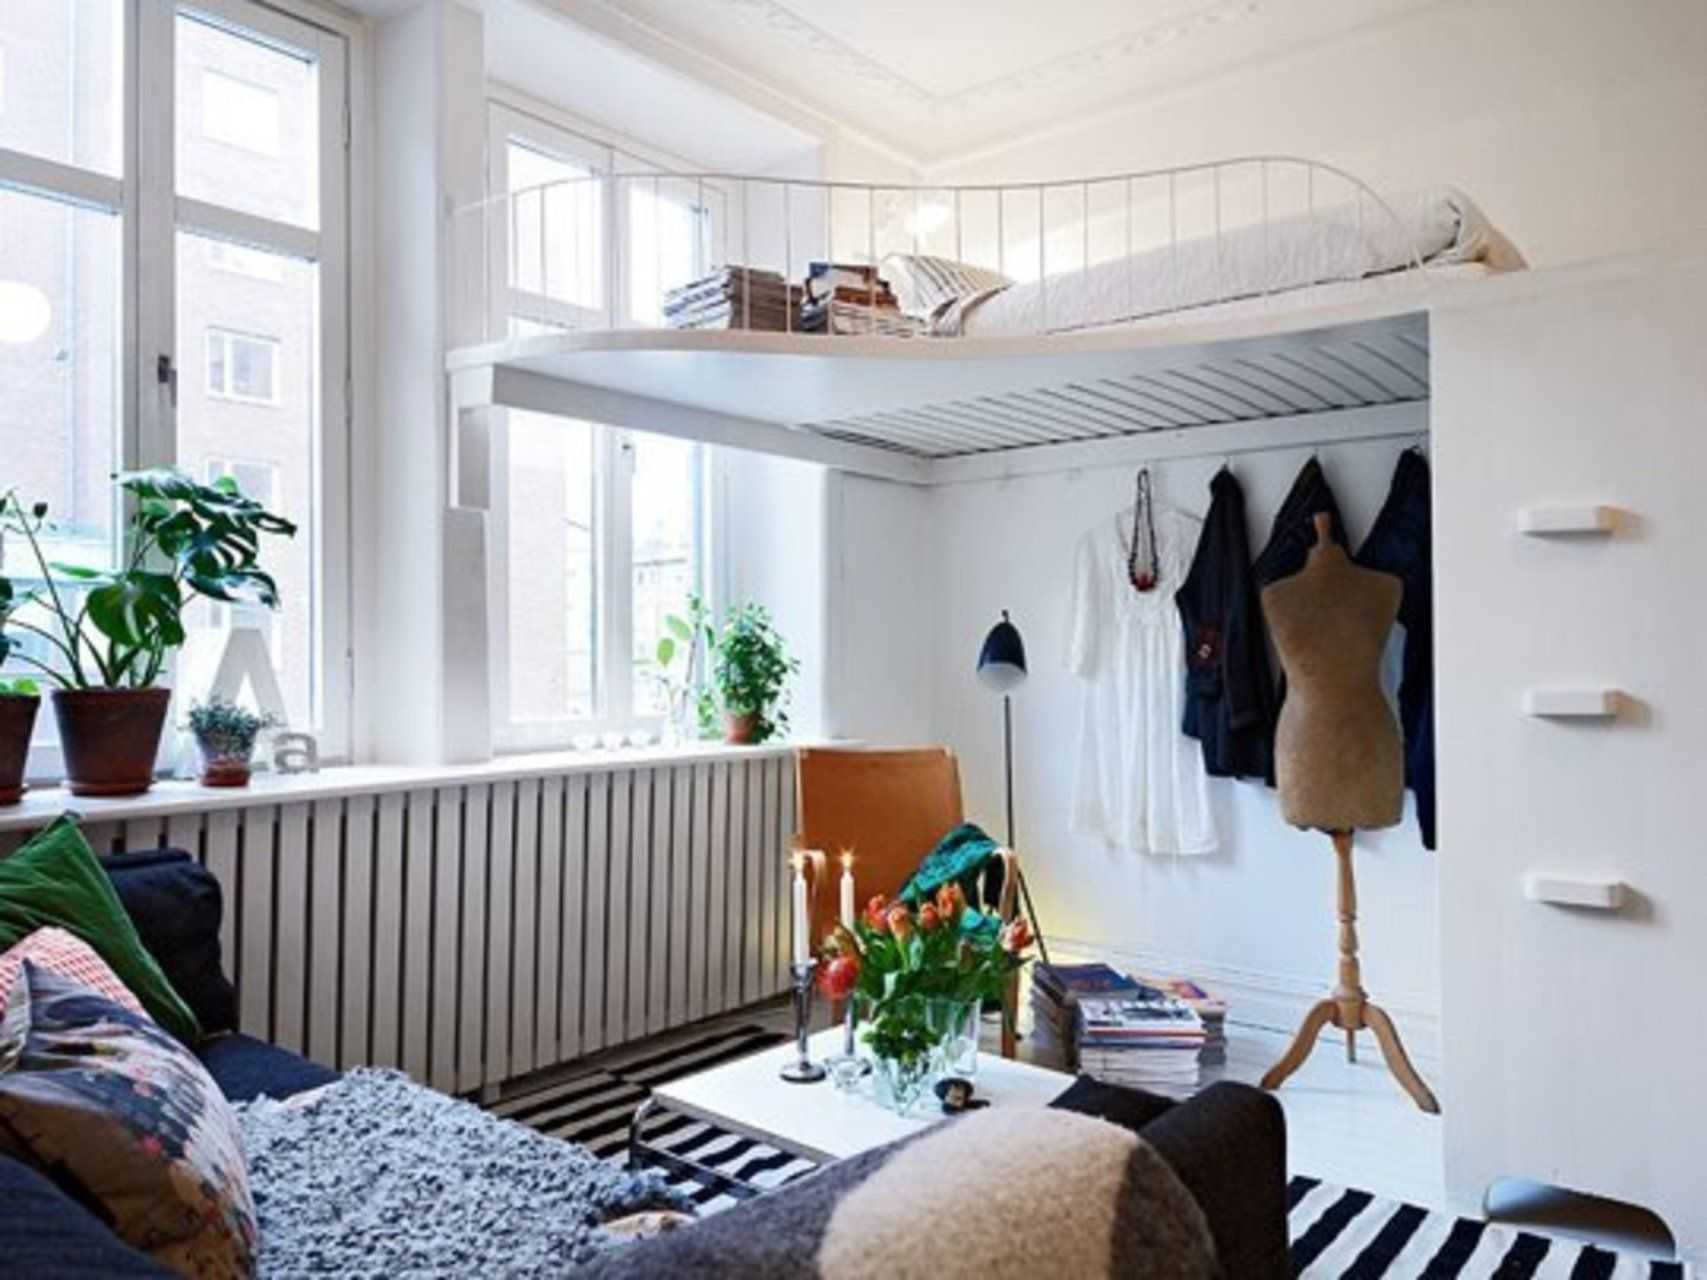 Bedroom ideas for loft rooms  Pin by silvia chaparro on Deco Rethink your bed u sleeping space